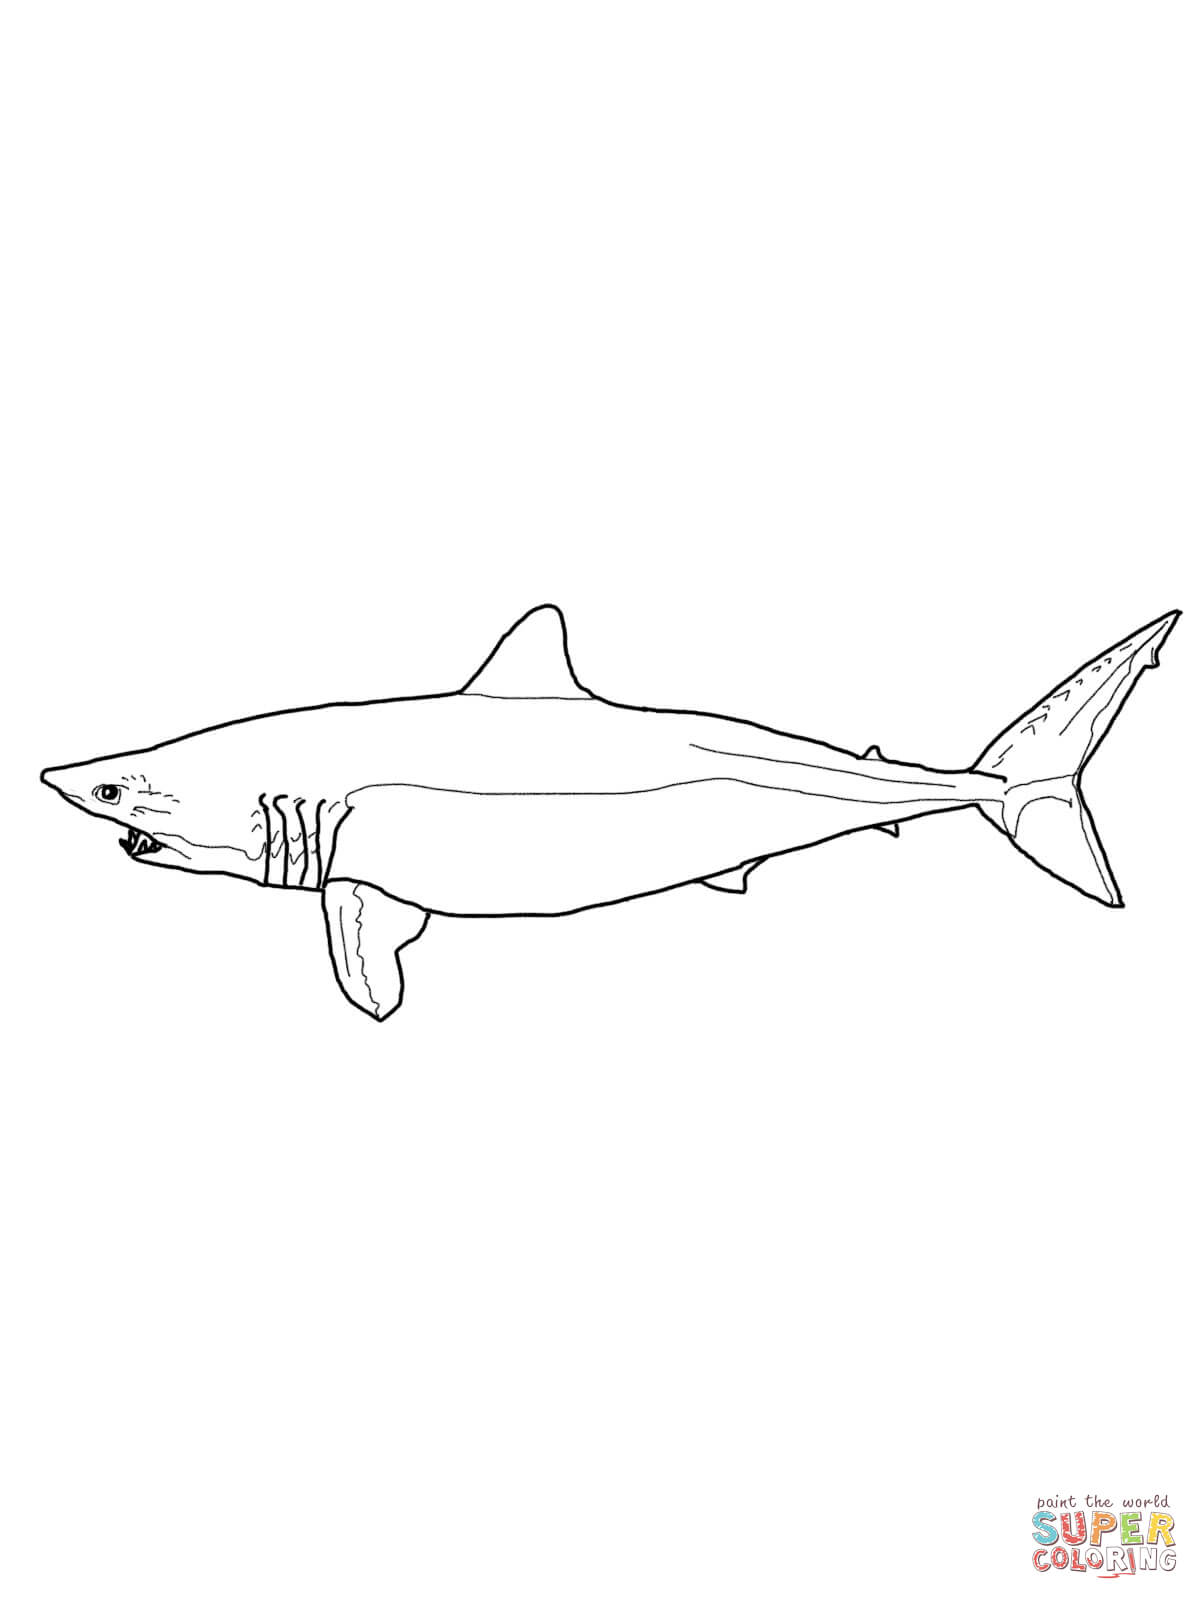 Thresher Shark Drawing at GetDrawings.com | Free for personal use ...